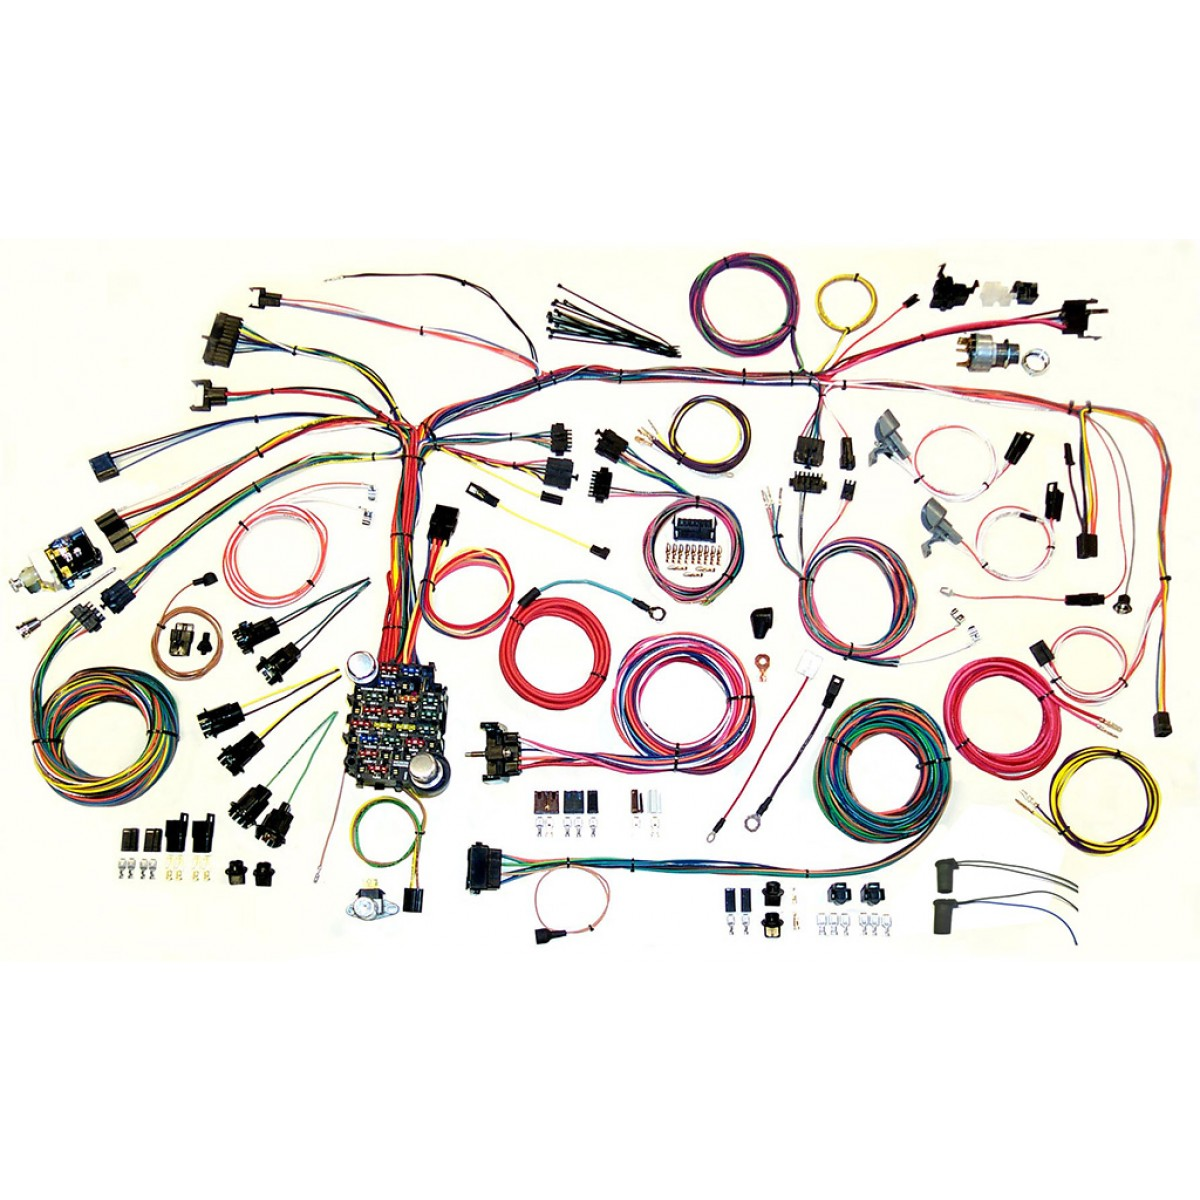 camaro wiring diagram image wiring diagram complete wiring harness 68 camaro complete auto wiring diagram on 68 camaro wiring diagram